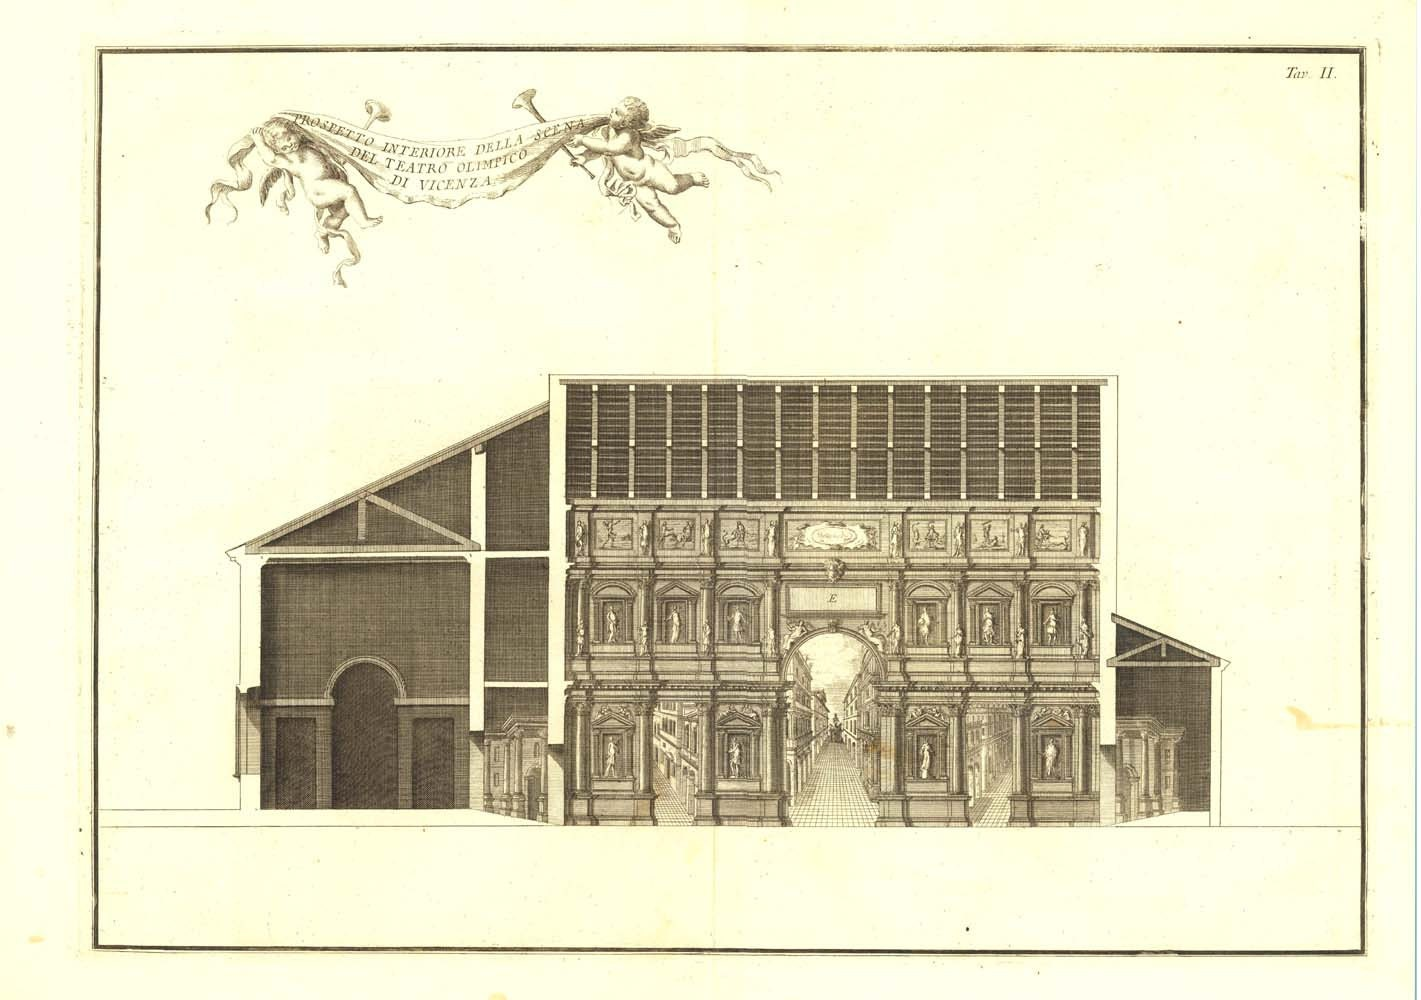 Palladio architecture teatro olimpico vicenza 1760 antique for Architecture antique